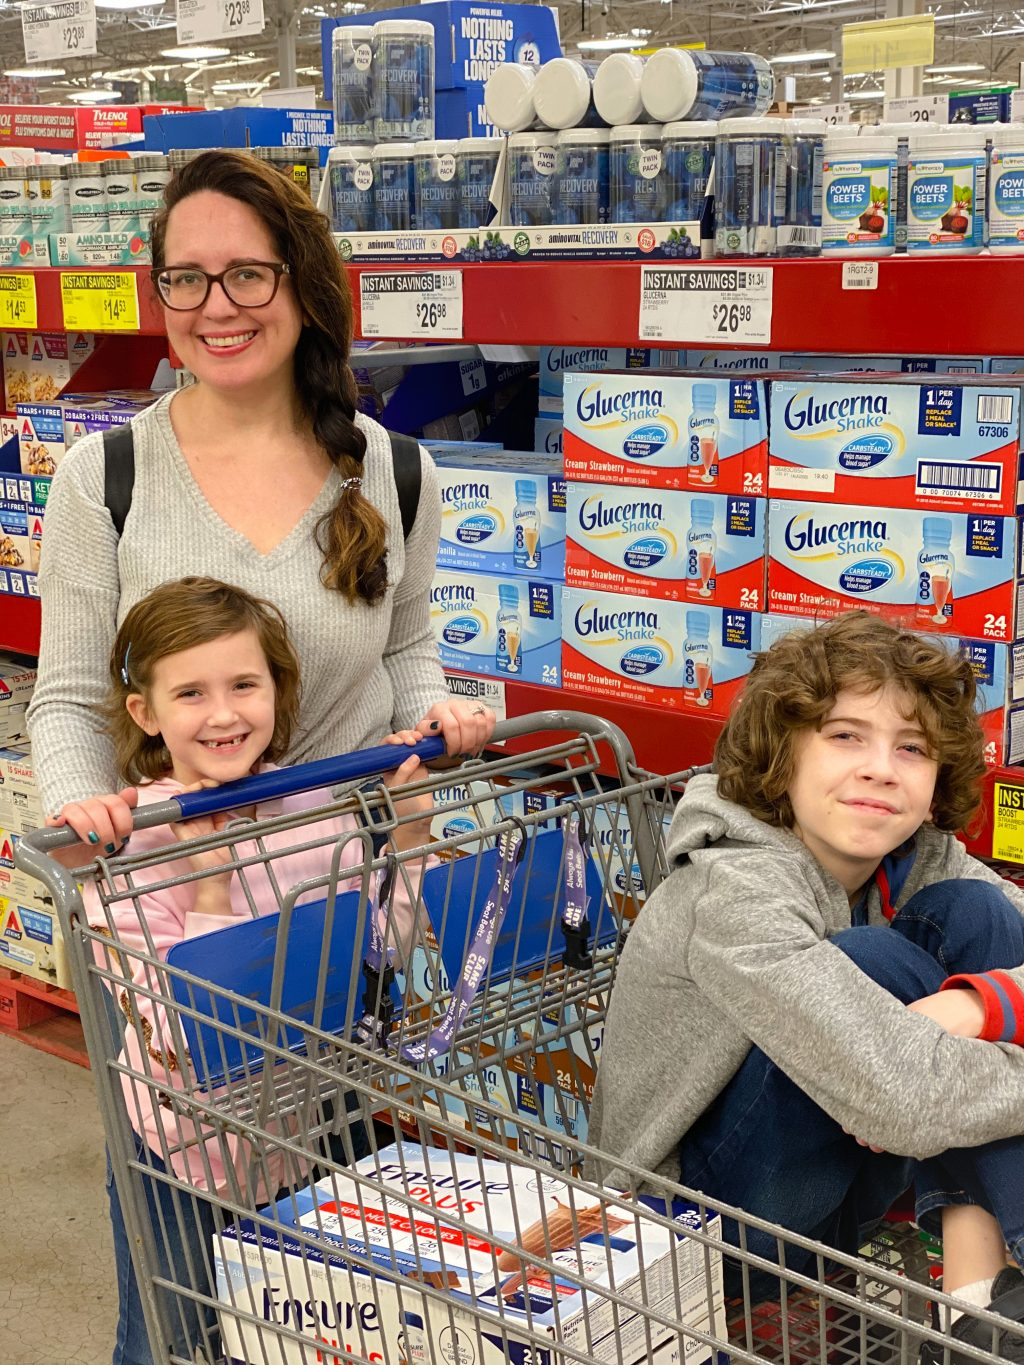 mom and kids shopping at Sam's Club while errands batching